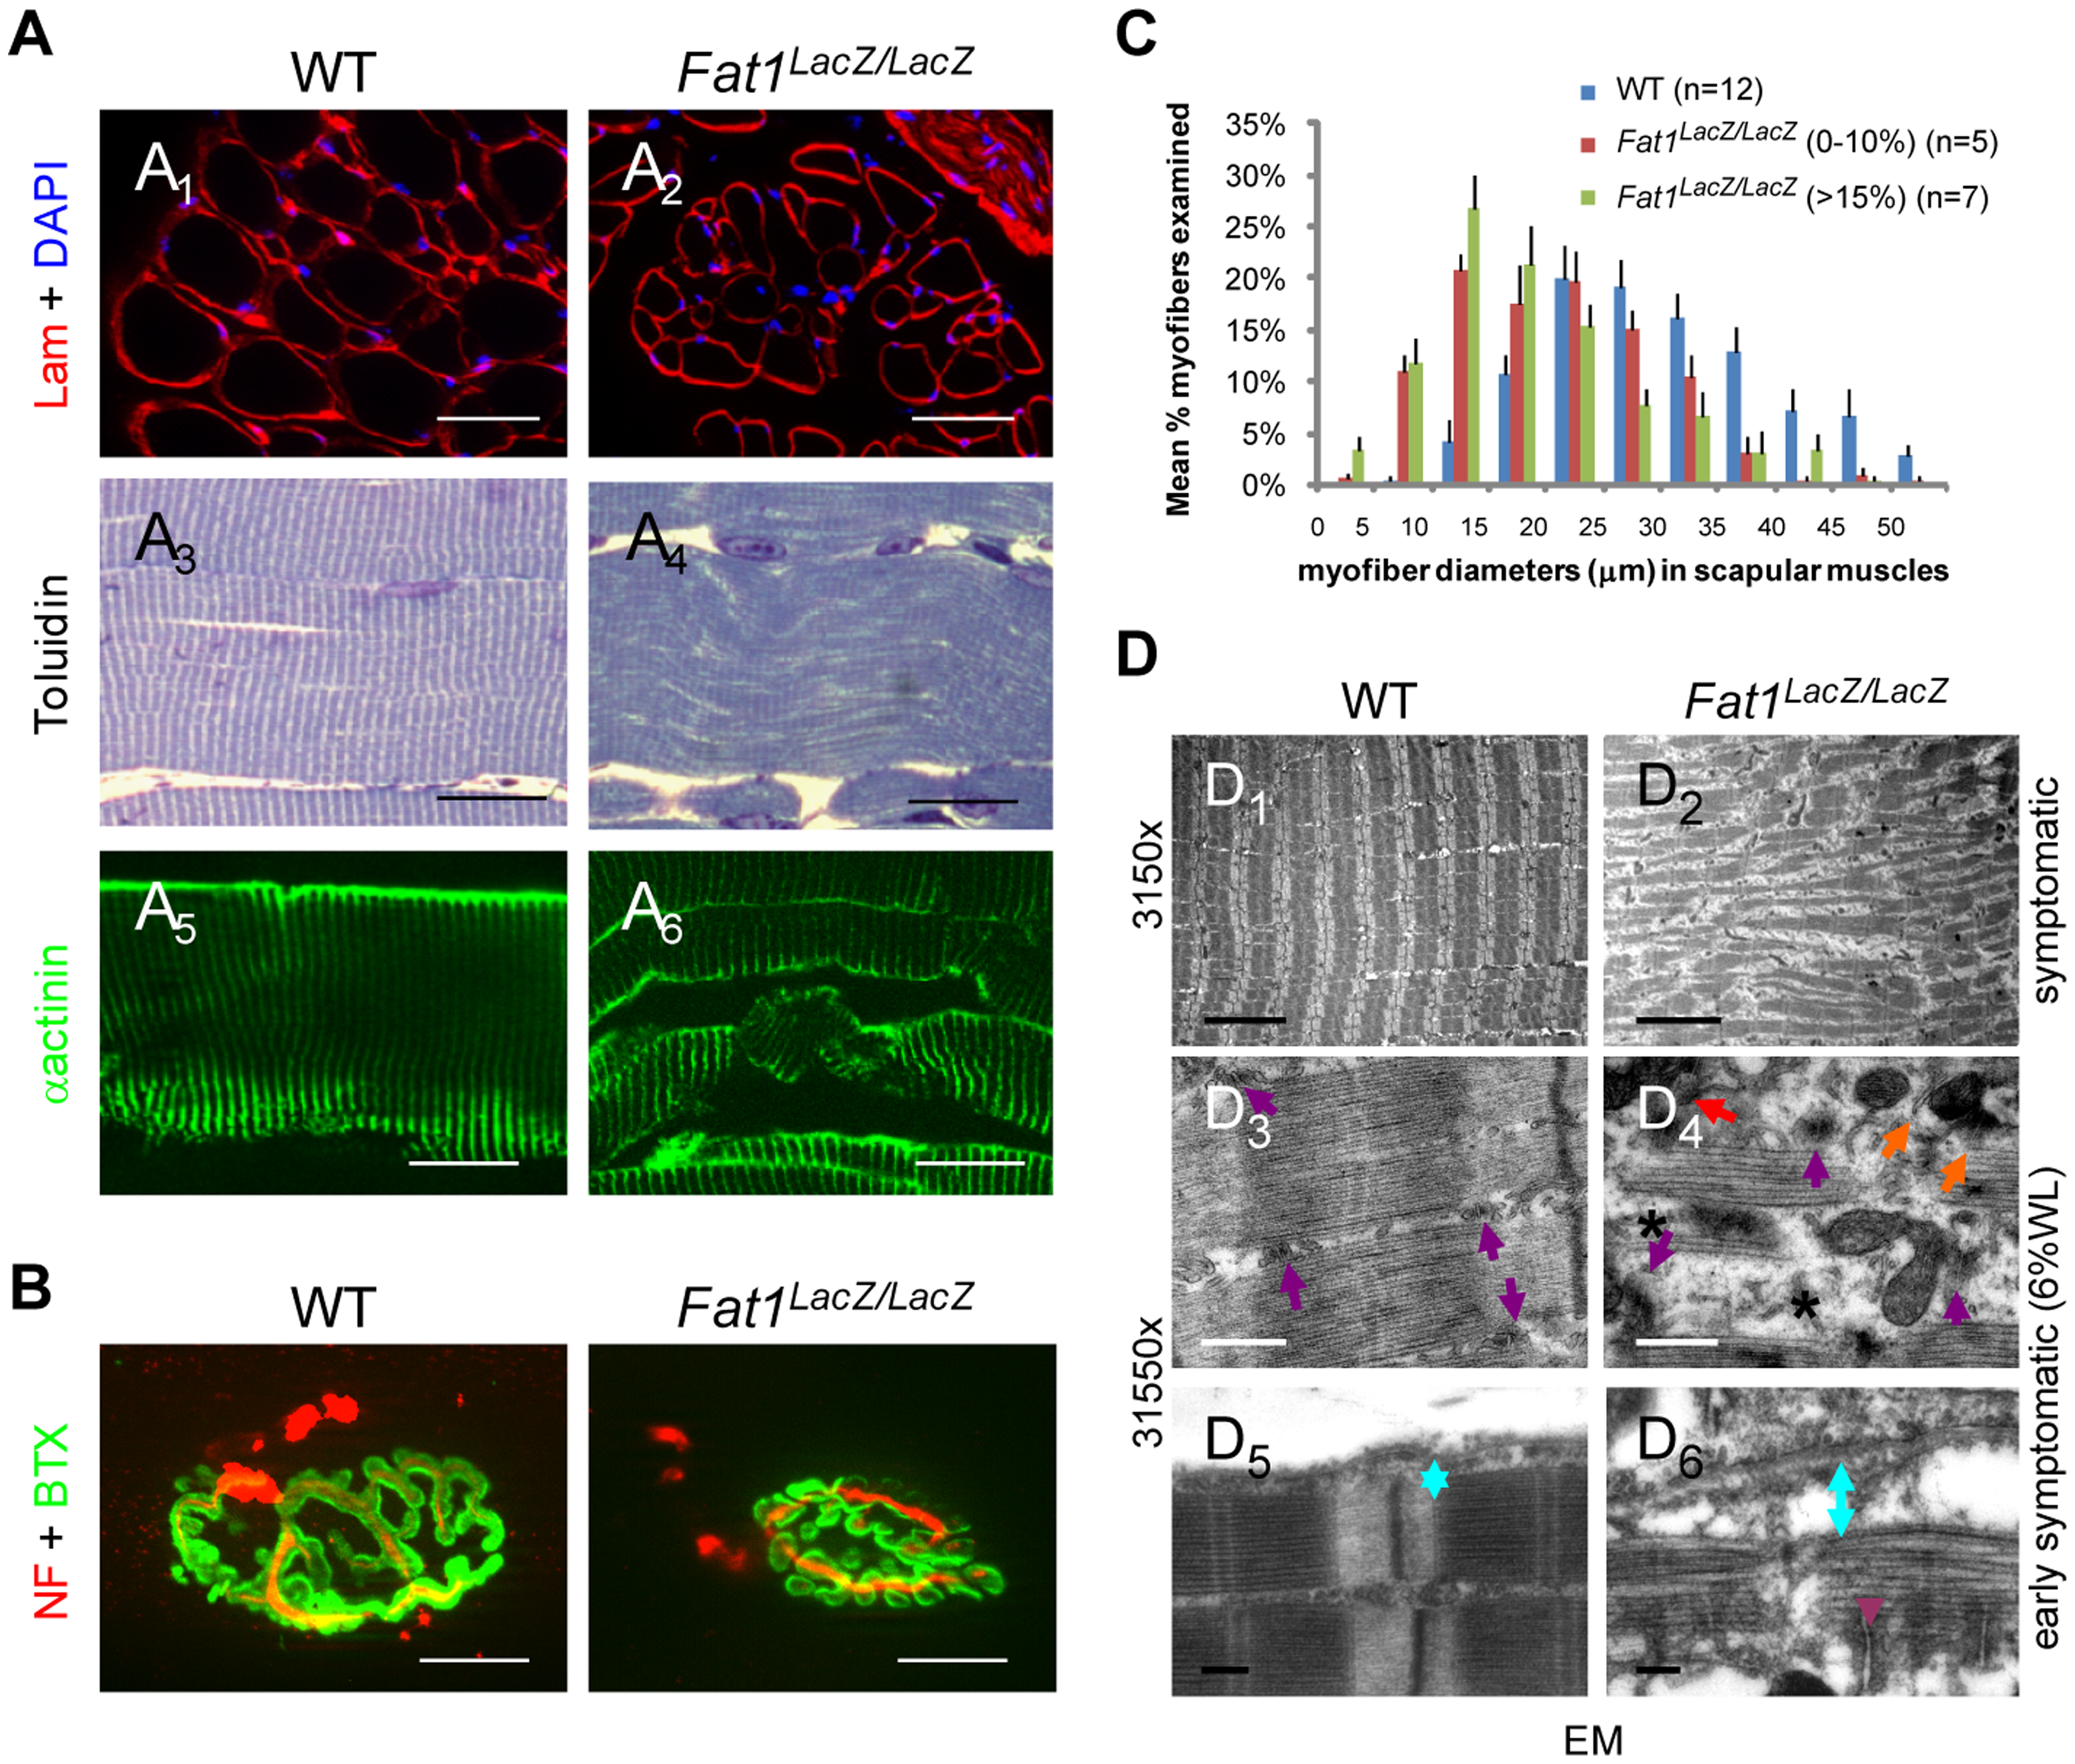 Abnormally shaped shoulder muscles of <i>Fat1</i>-deficient mice develop phenotypes involving reduced muscle fibres diameter and structural abnormalities.